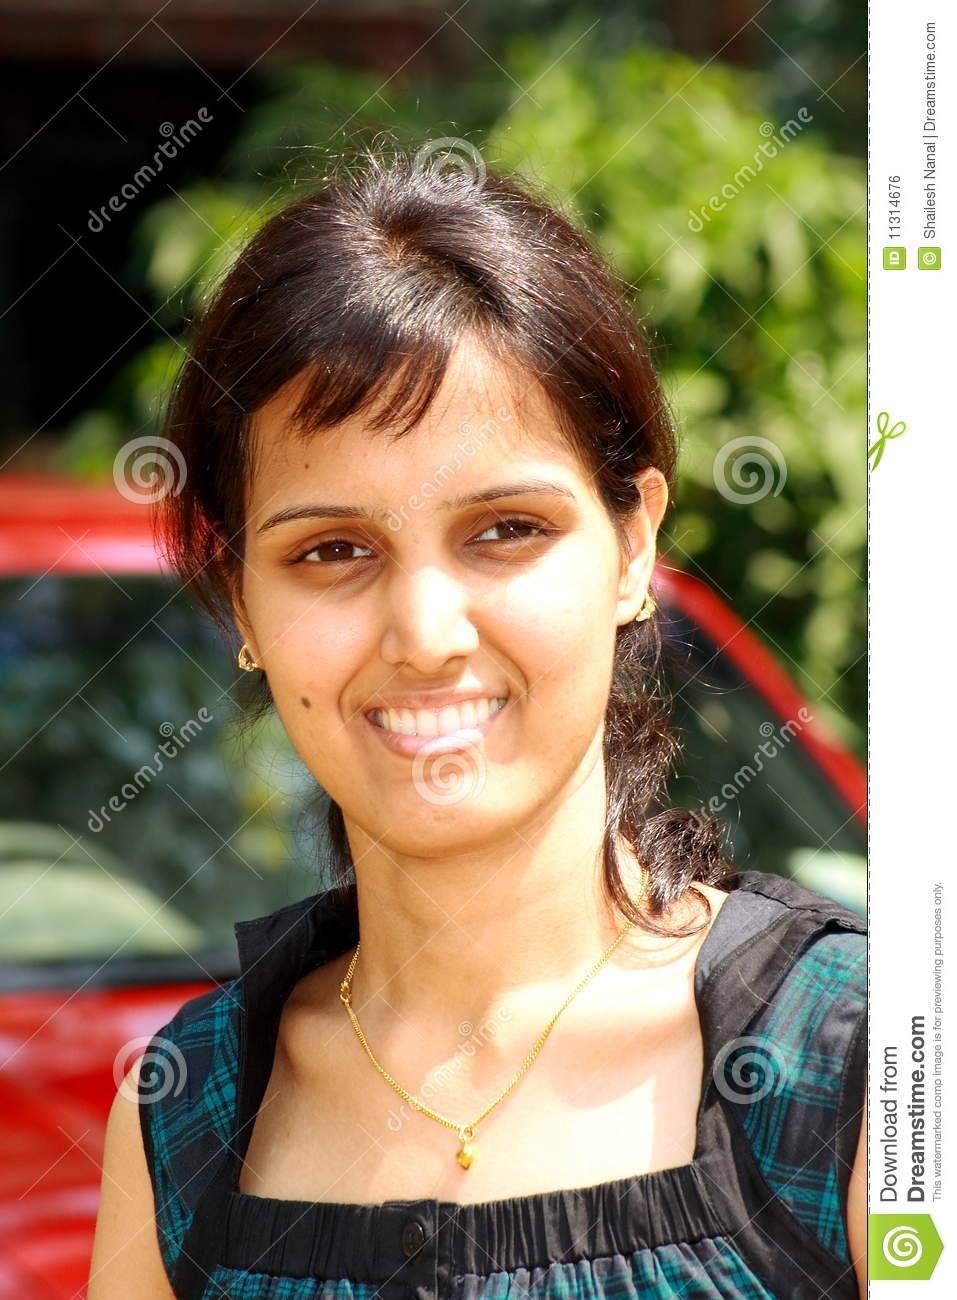 Smart face of an Indian girl - smart-face-indian-girl-11314676